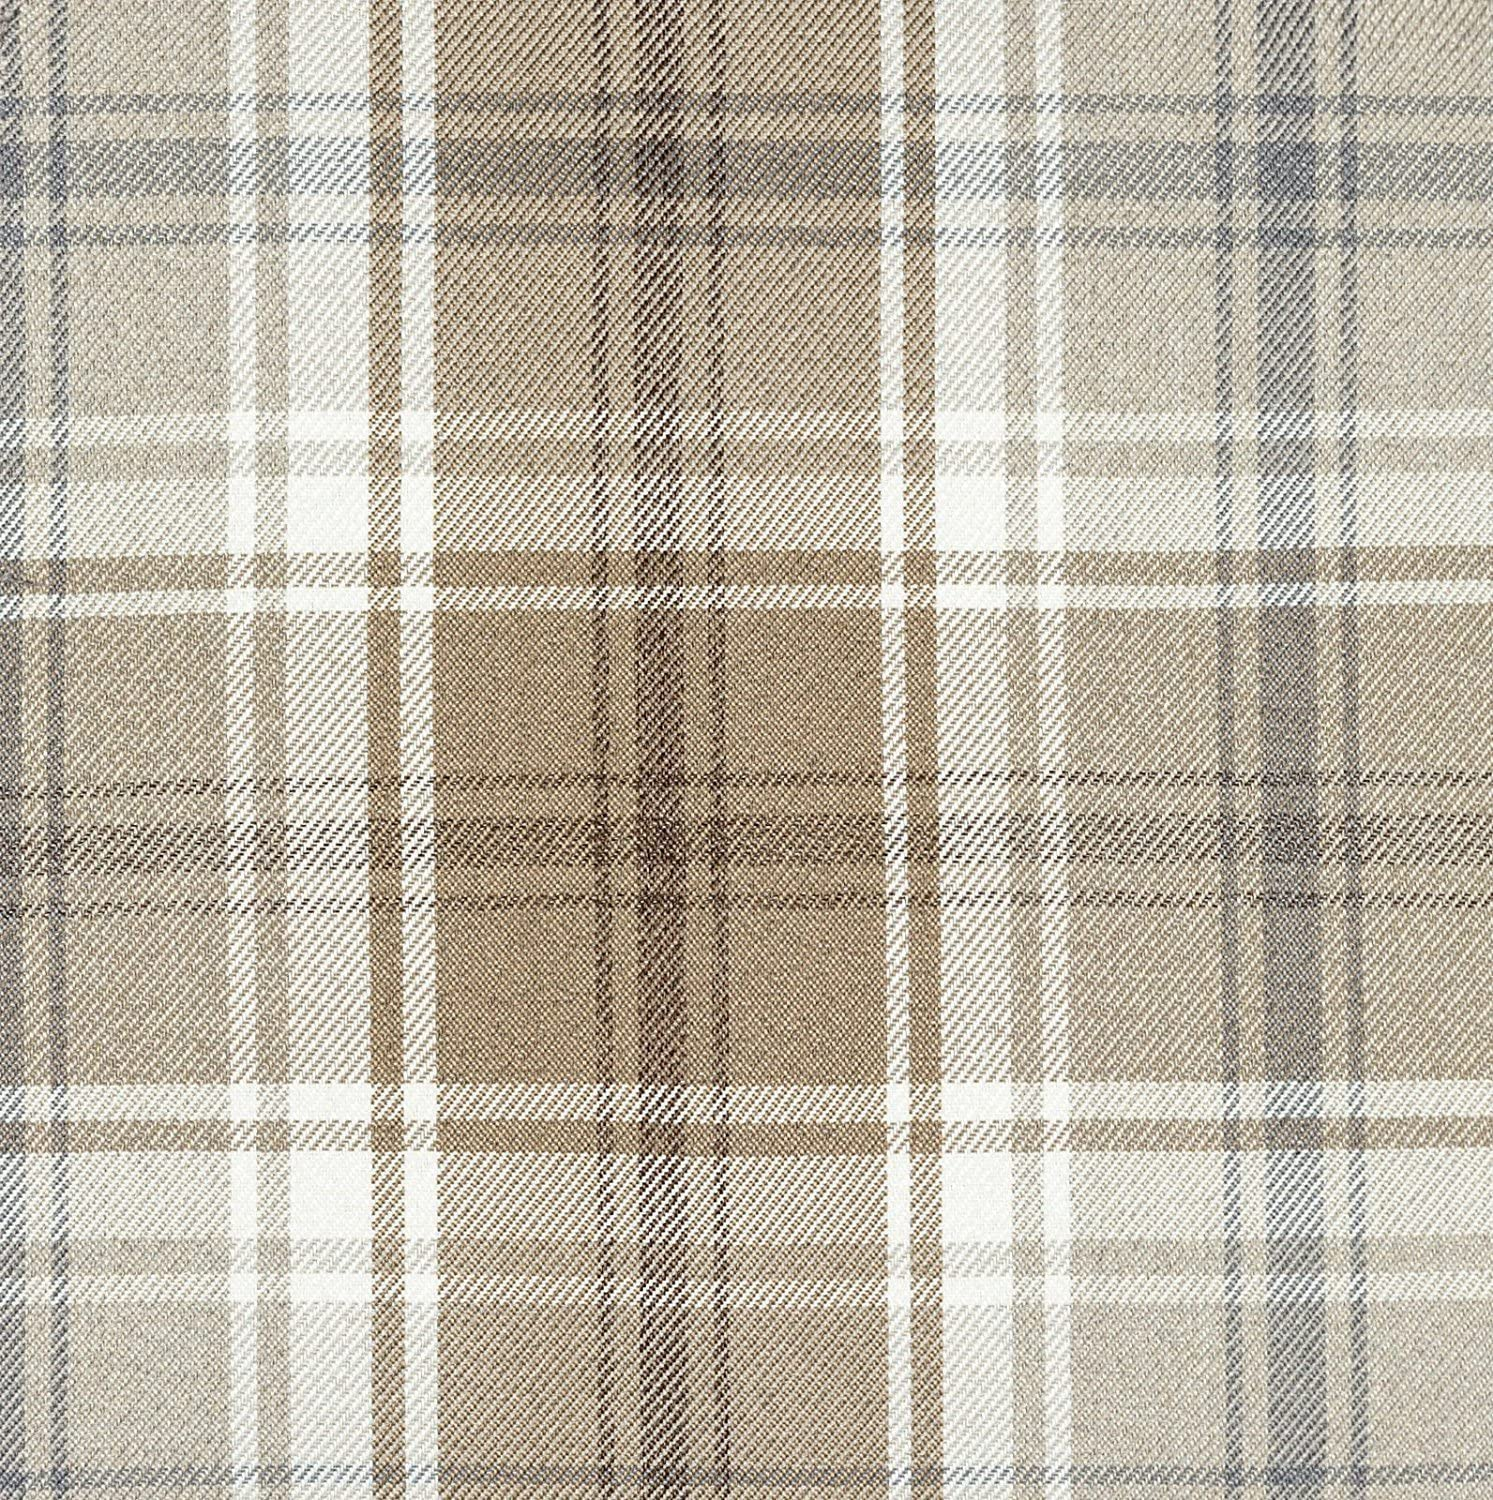 140cm Bronze and brown No.264 retro style upholstery fabric//material